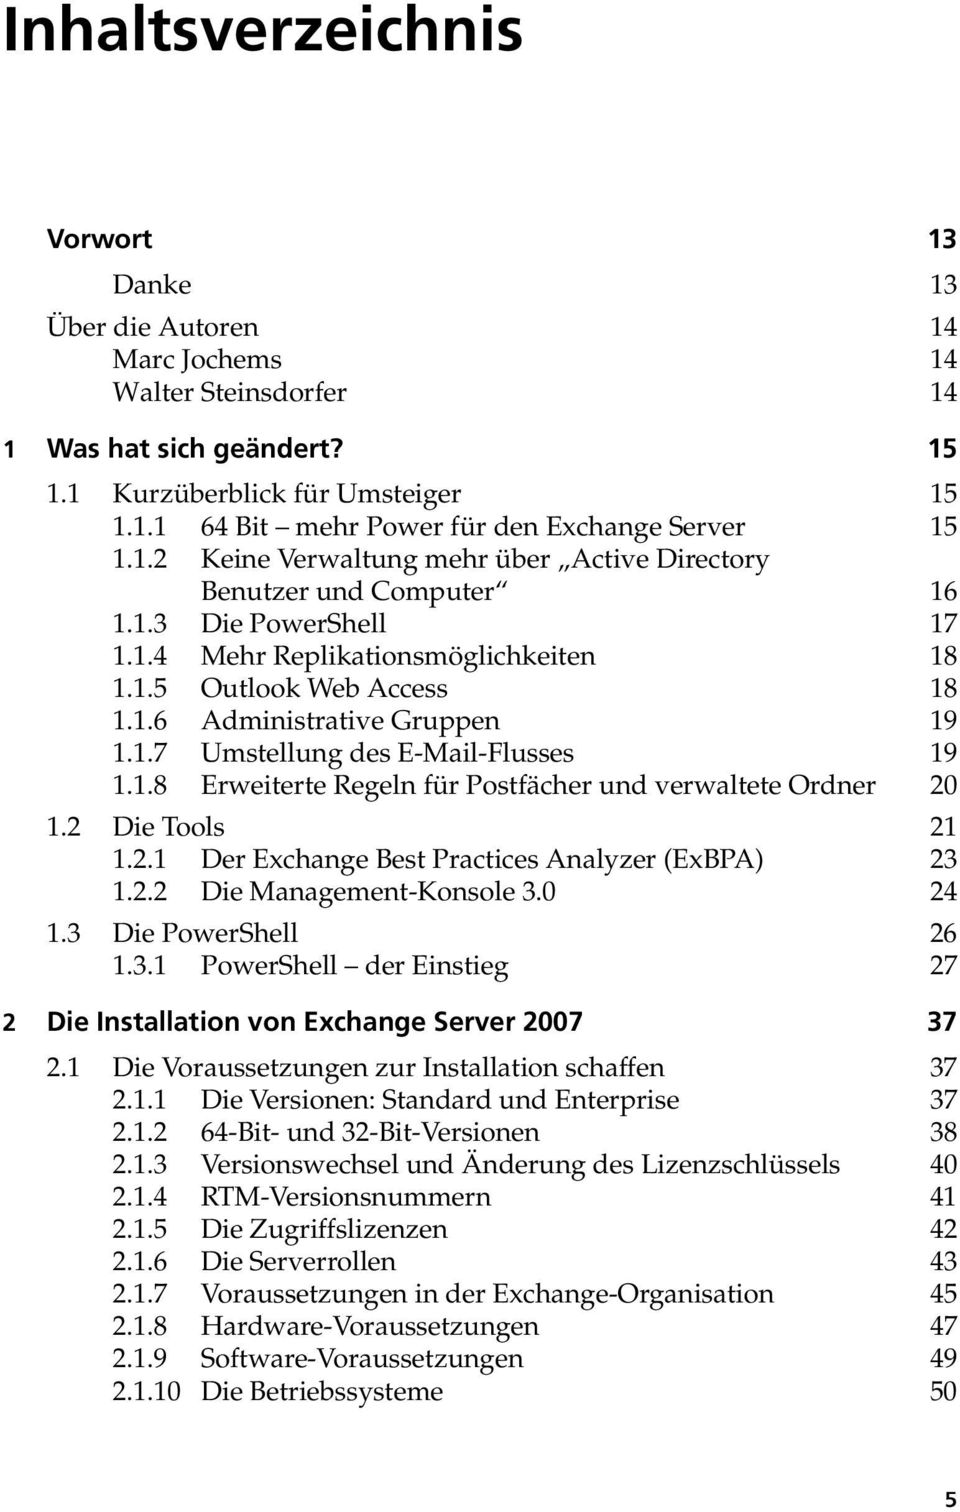 1.7 Umstellung des E-Mail-Flusses 19 1.1.8 Erweiterte Regeln für Postfächer und verwaltete Ordner 20 1.2 Die Tools 21 1.2.1 Der Exchange Best Practices Analyzer (ExBPA) 23 1.2.2 Die Management-Konsole 3.